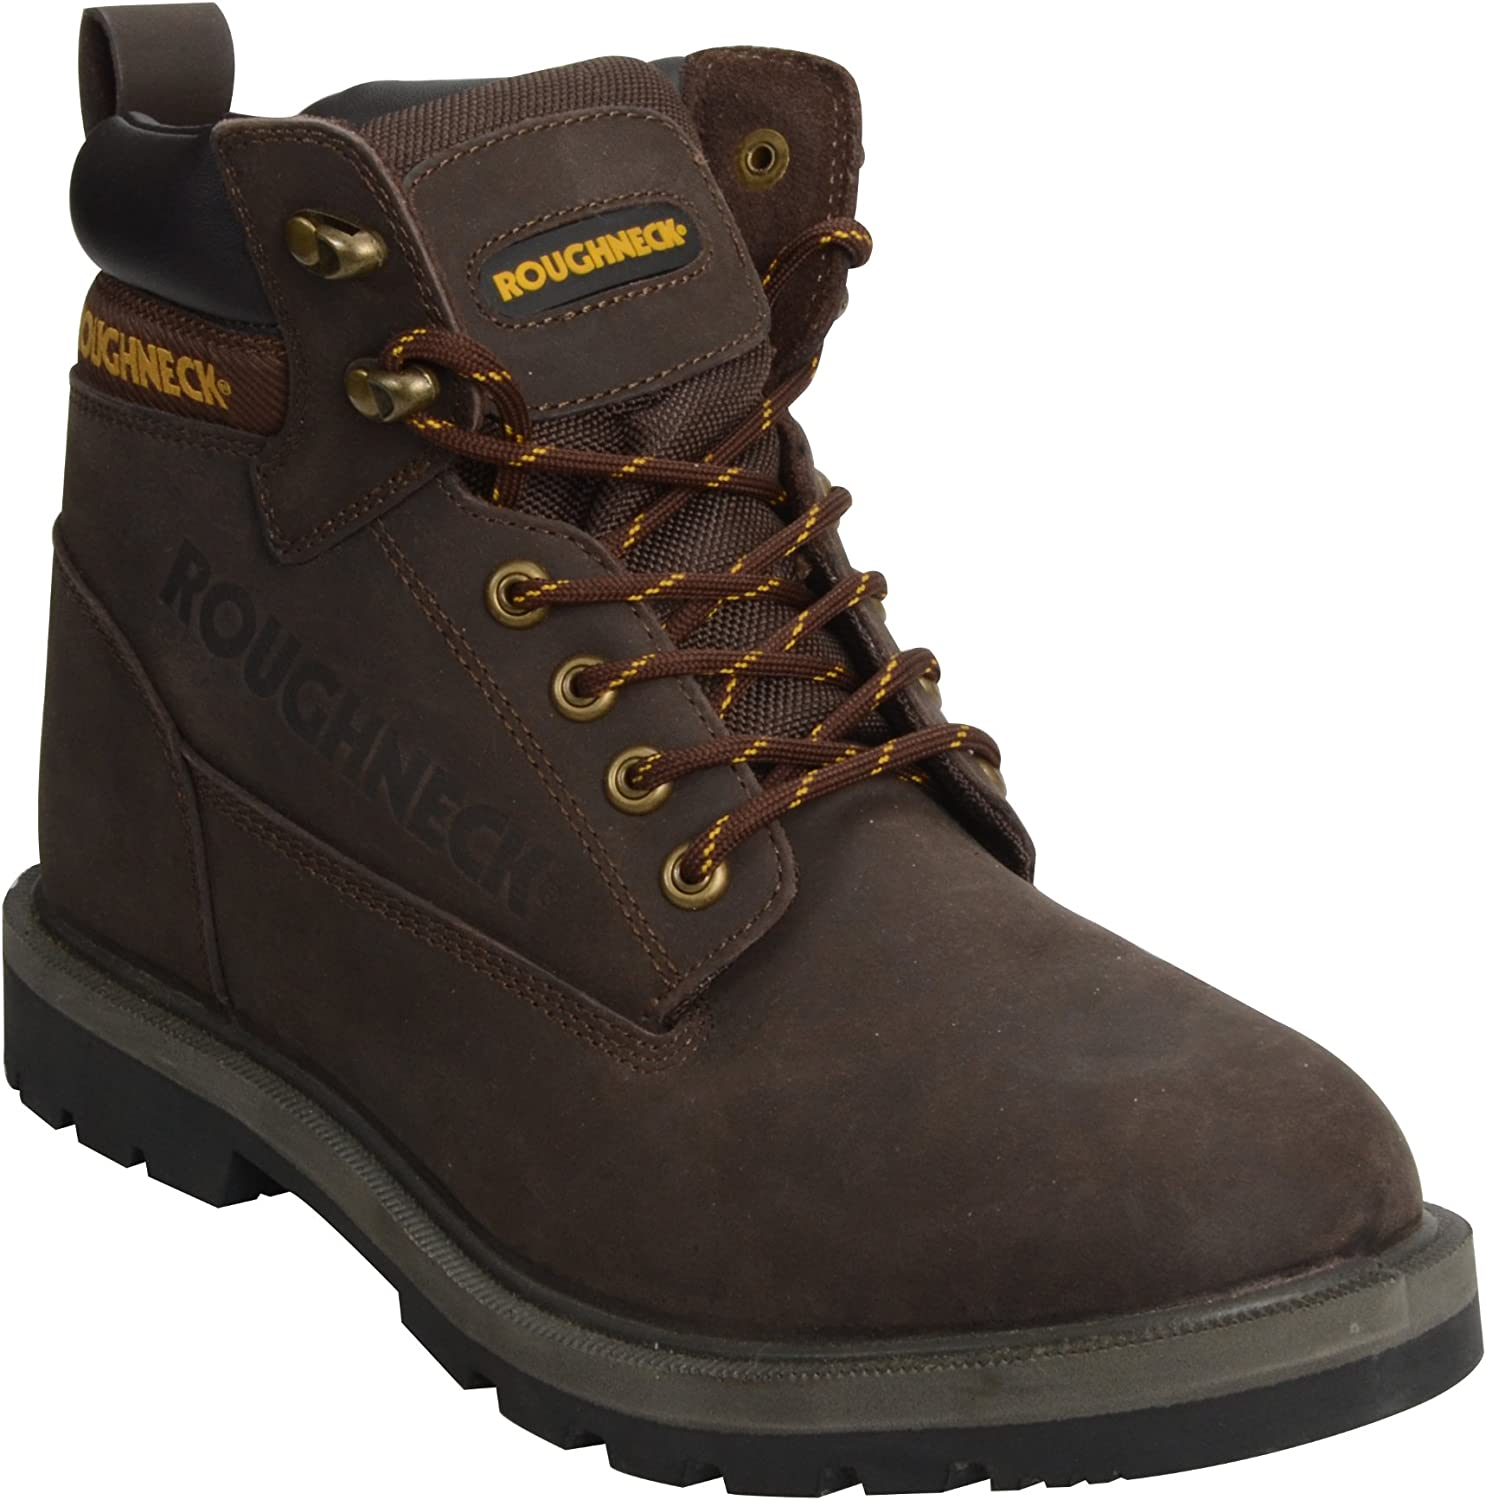 Roughneck Clothing RNKTORNAD6B UK-6 Euro-39 Tornado Site Boots Composite Midsole - Brown